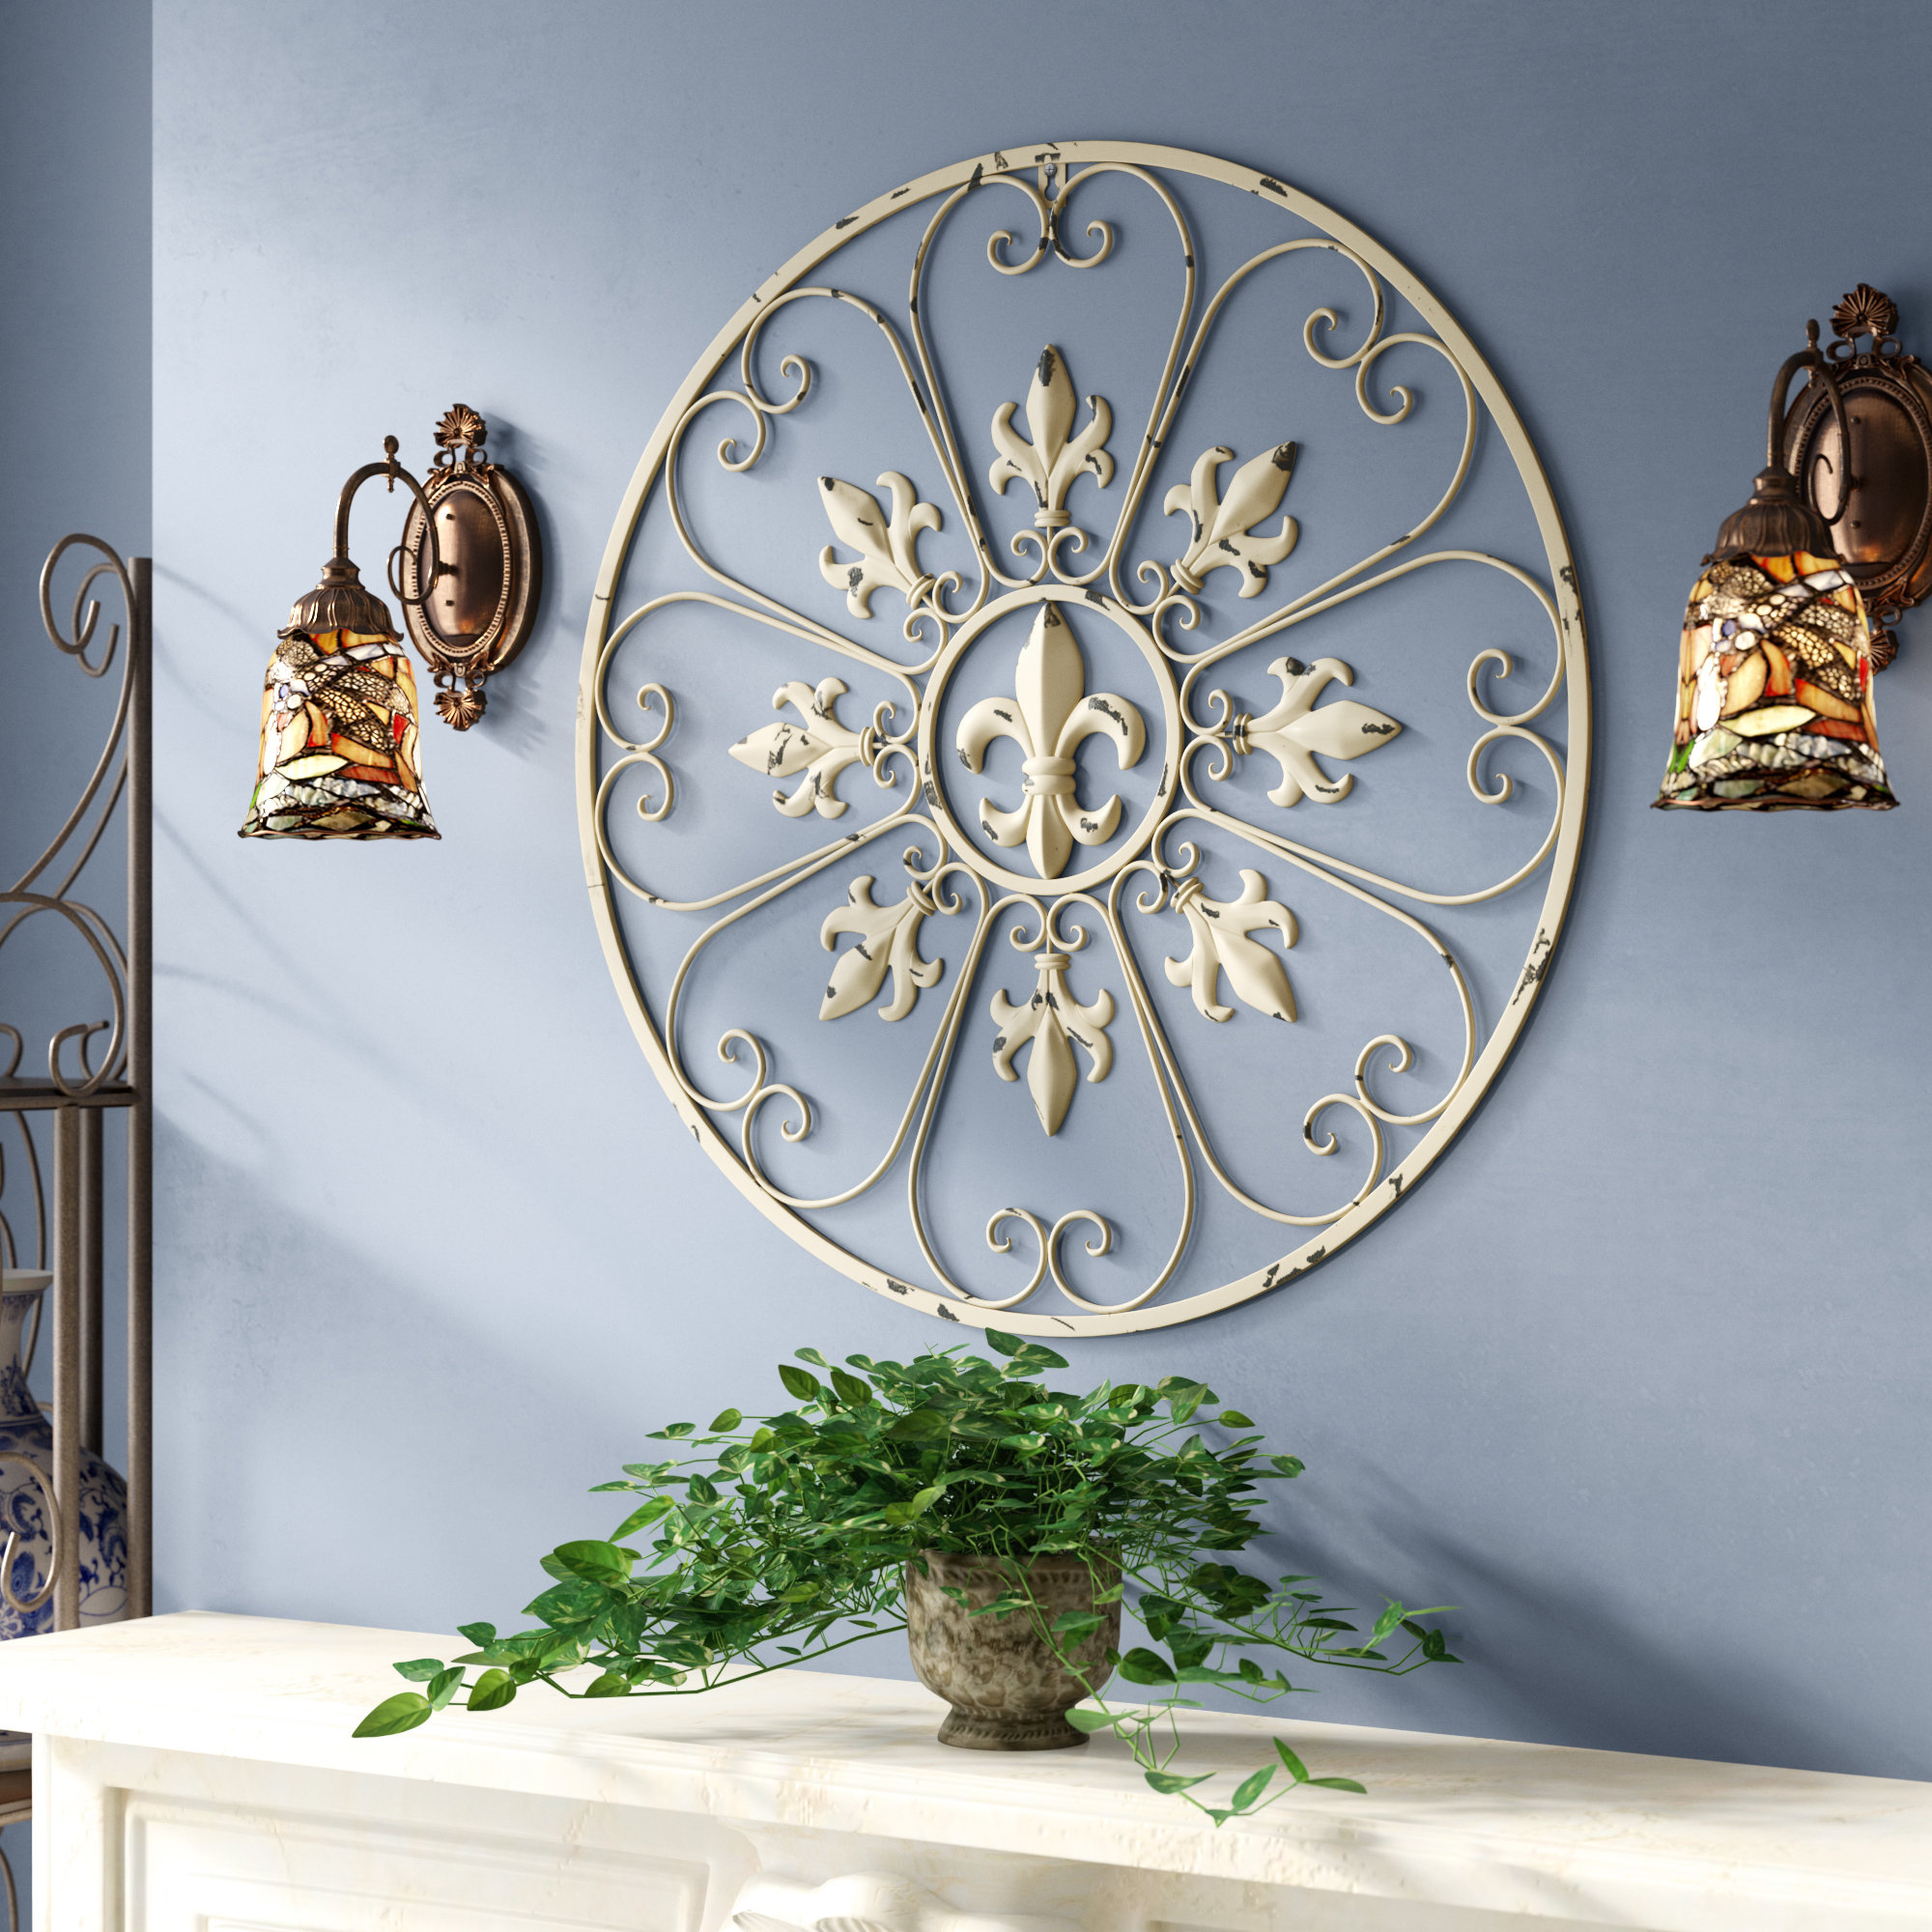 Over The Door Metal Wall Decor | Wayfair throughout Alvis Traditional Metal Wall Decor (Image 20 of 30)